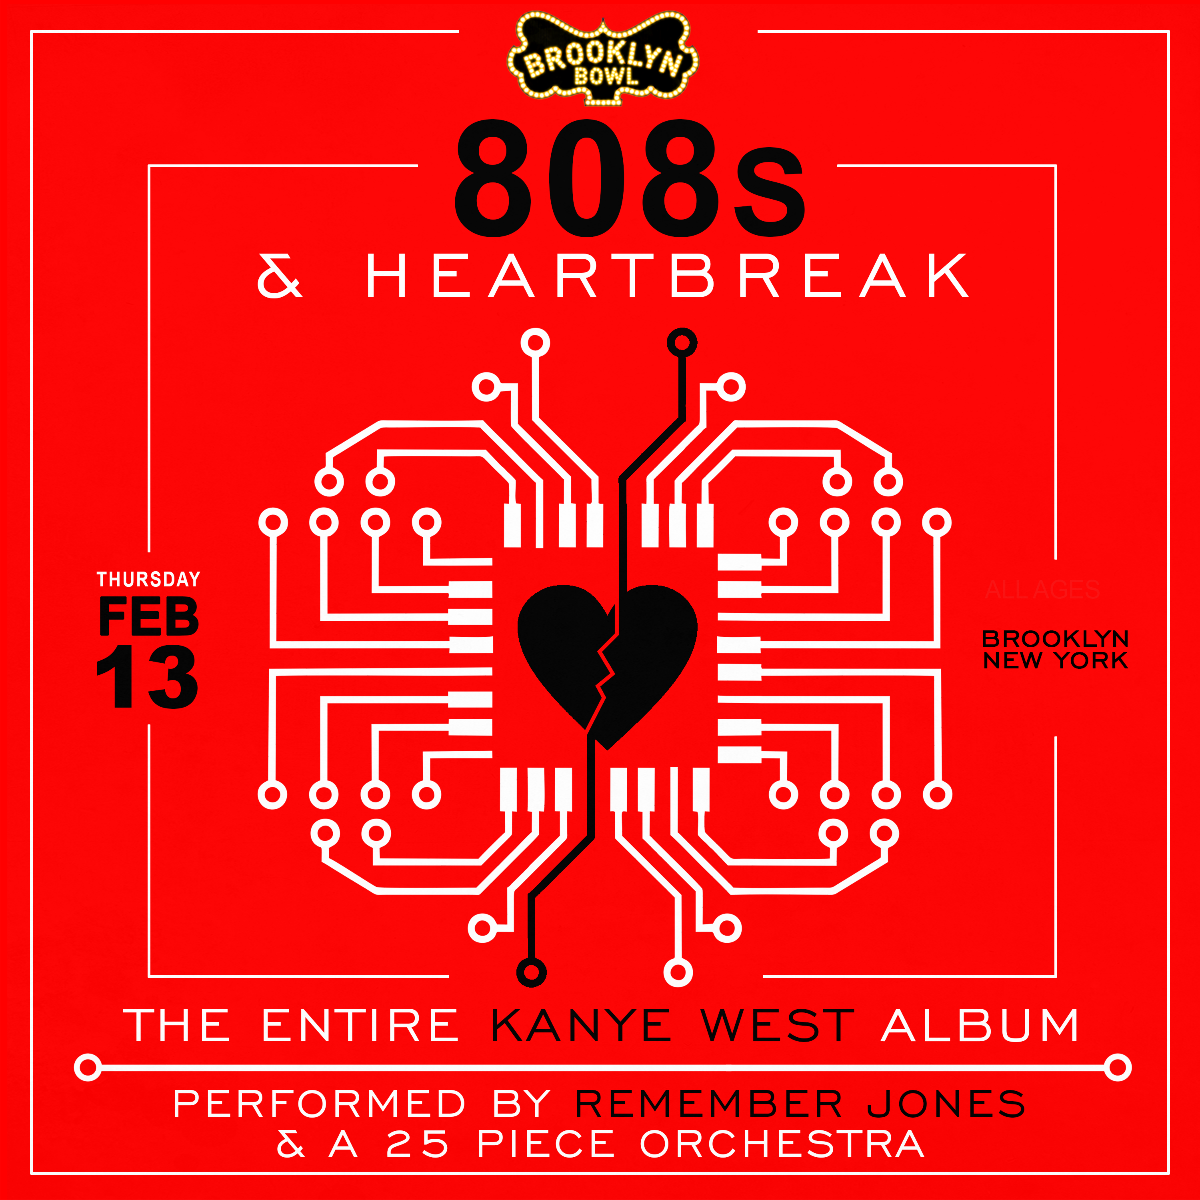 808s & HEARTBREAK: The Entire Kanye West Album Performed by Remember Jones & A 25-PIECE ORCHESTRA